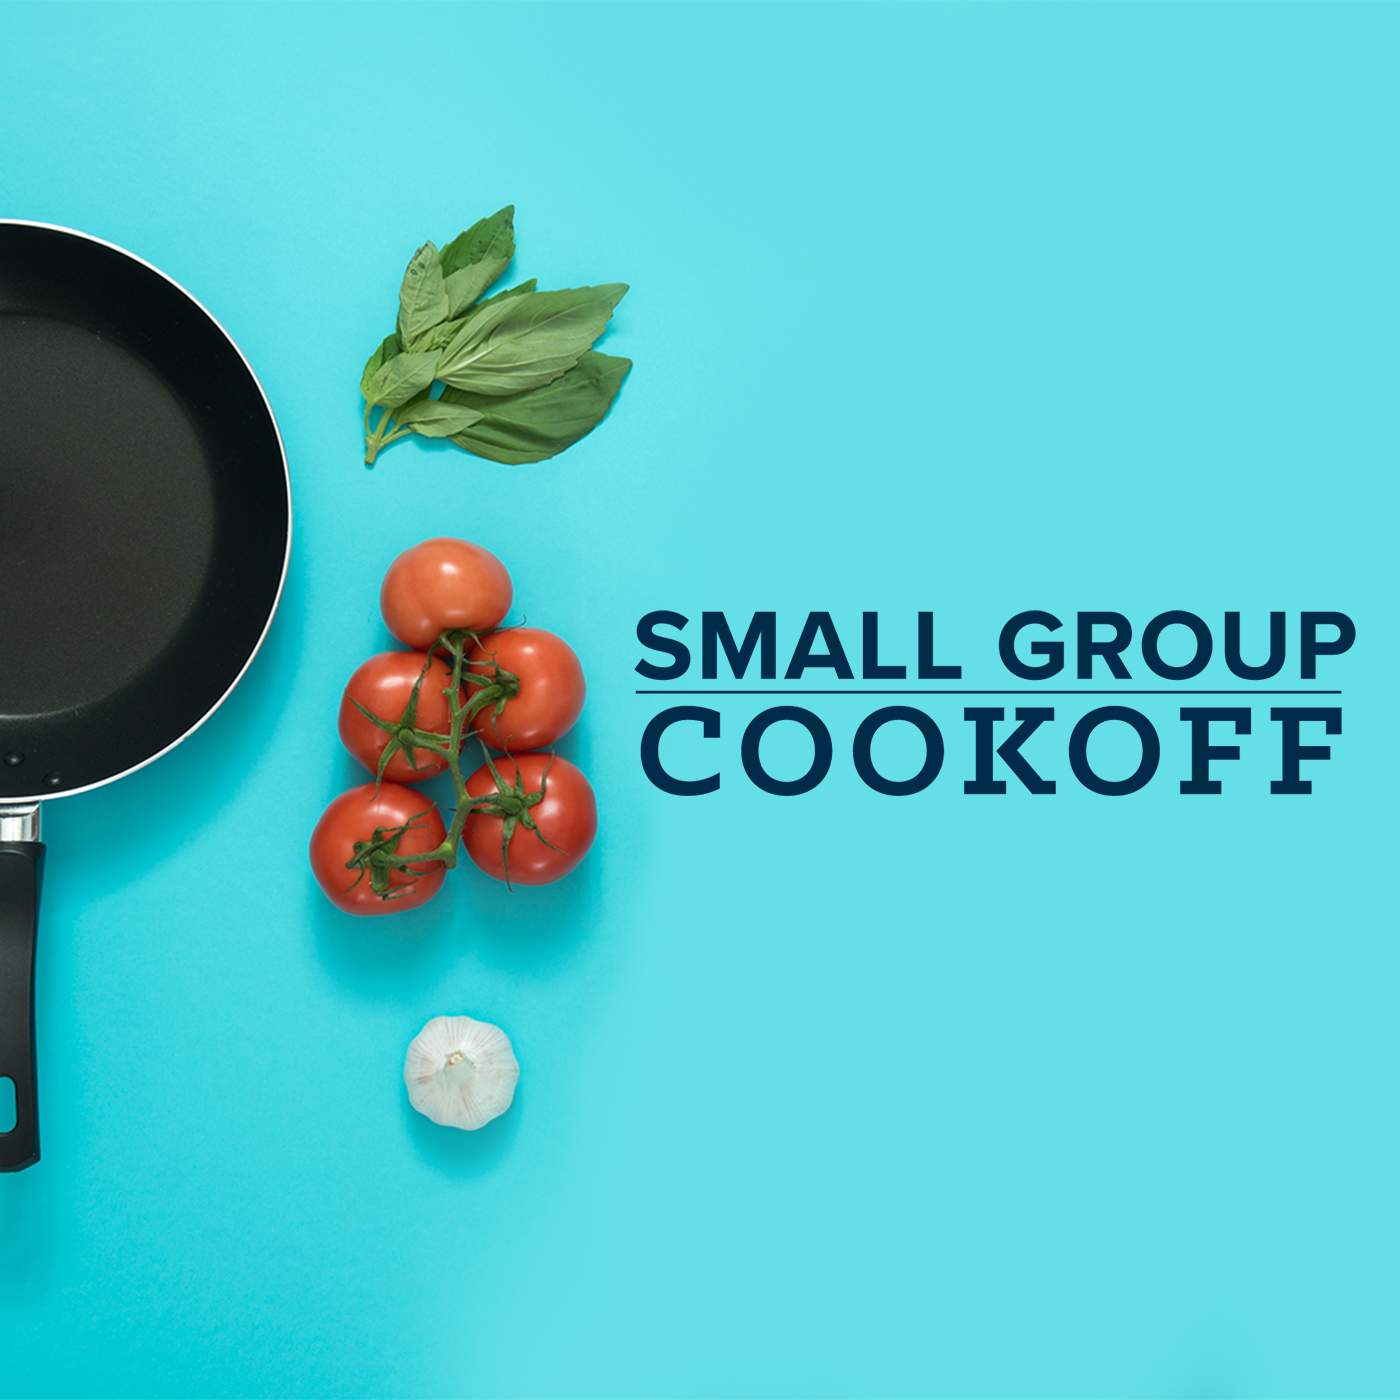 Small Group Cookoff Square Image.jpg